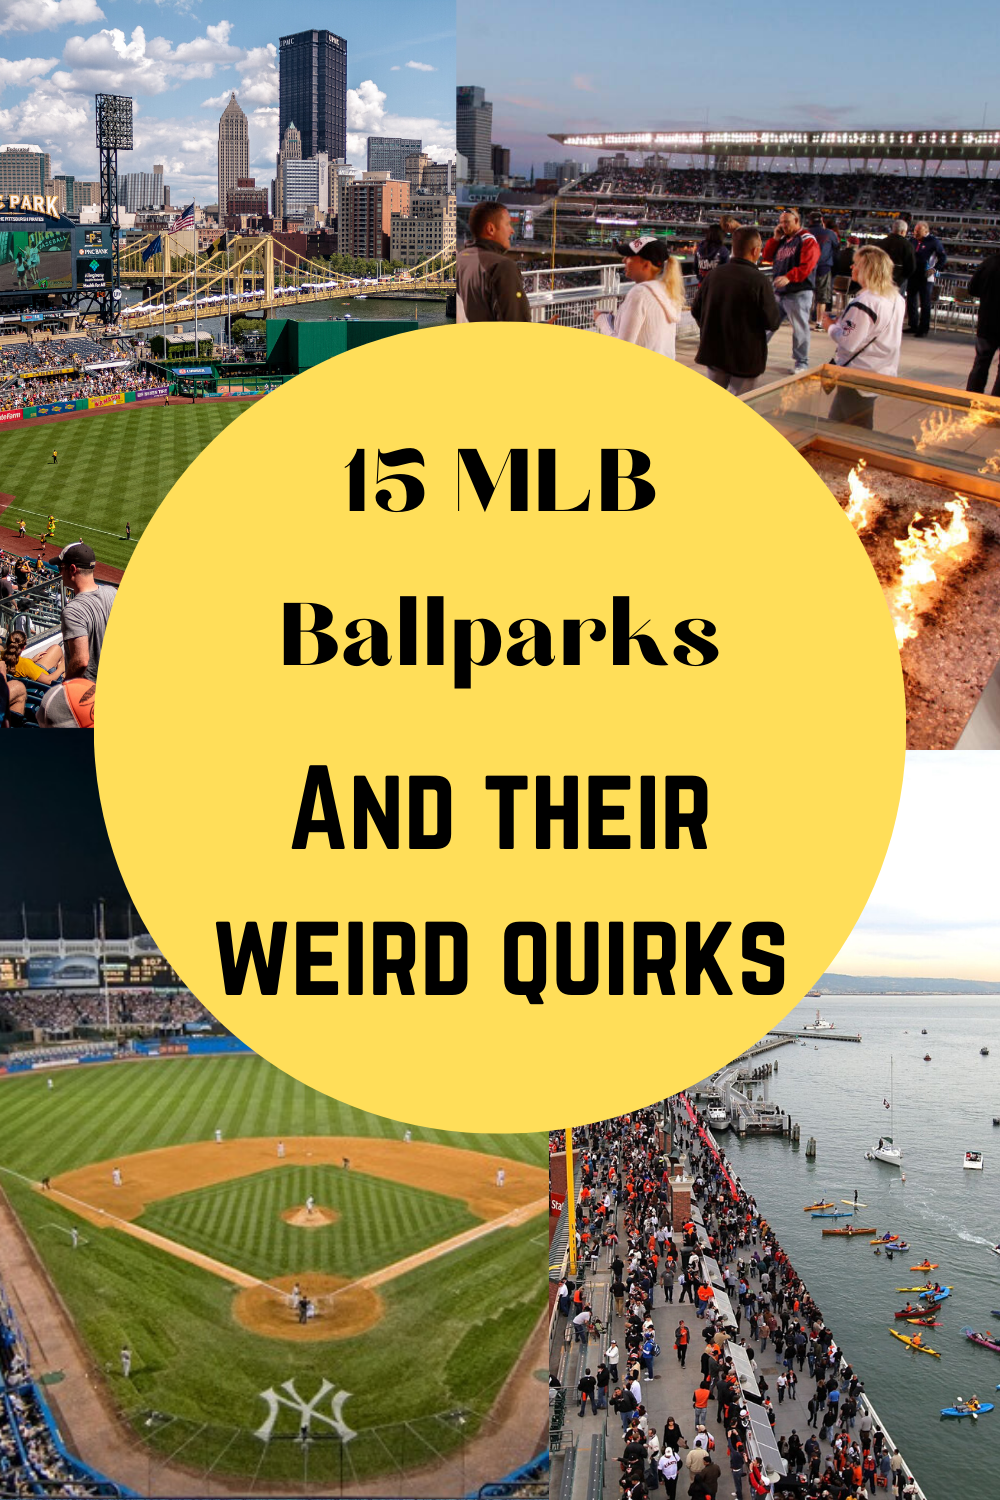 15 Mlb Ballparks Have Made It Into Our Featured Article Ballparks With Swimming Pools Fire Pits Nightclubs A In 2020 Ballparks Major League Baseball How To Find Out